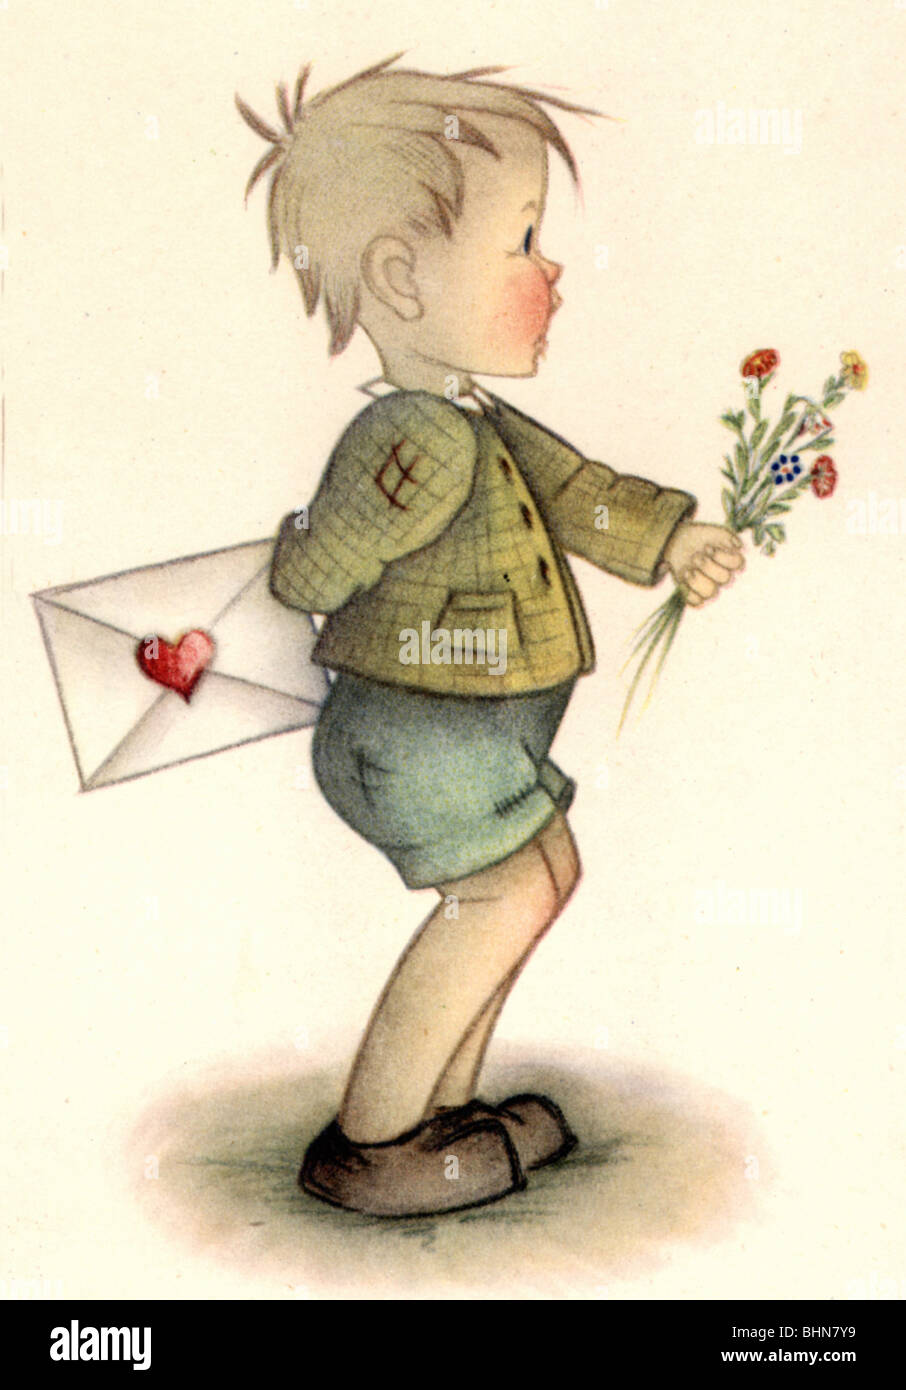 Kitsch souvenir greetings card boy with love letter and flowers kitsch souvenir greetings card boy with love letter and flowers drawing by f probst historic historical mothers day l m4hsunfo Images